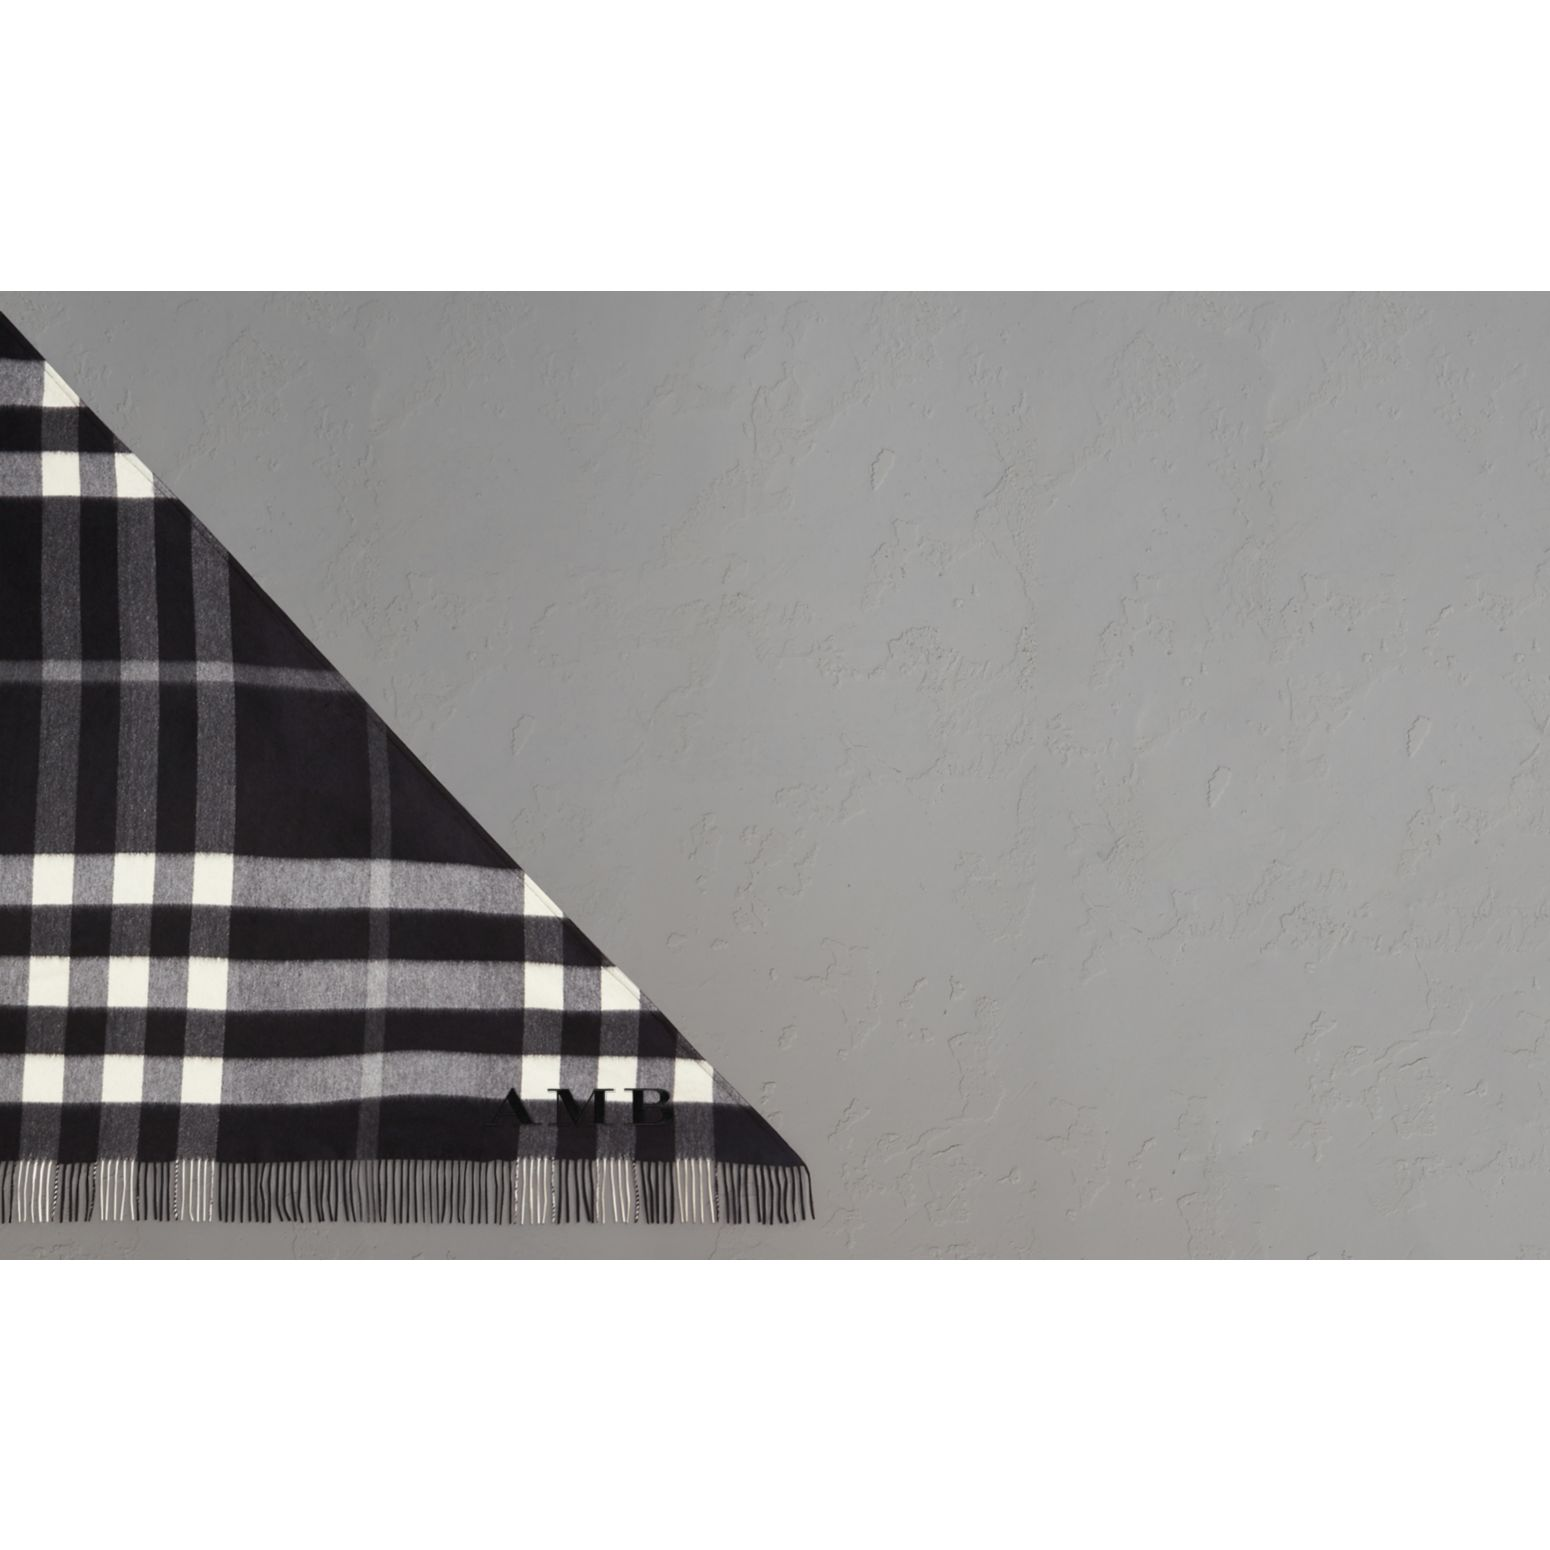 The Burberry Bandana in Check Cashmere in Black | Burberry Australia - gallery image 1